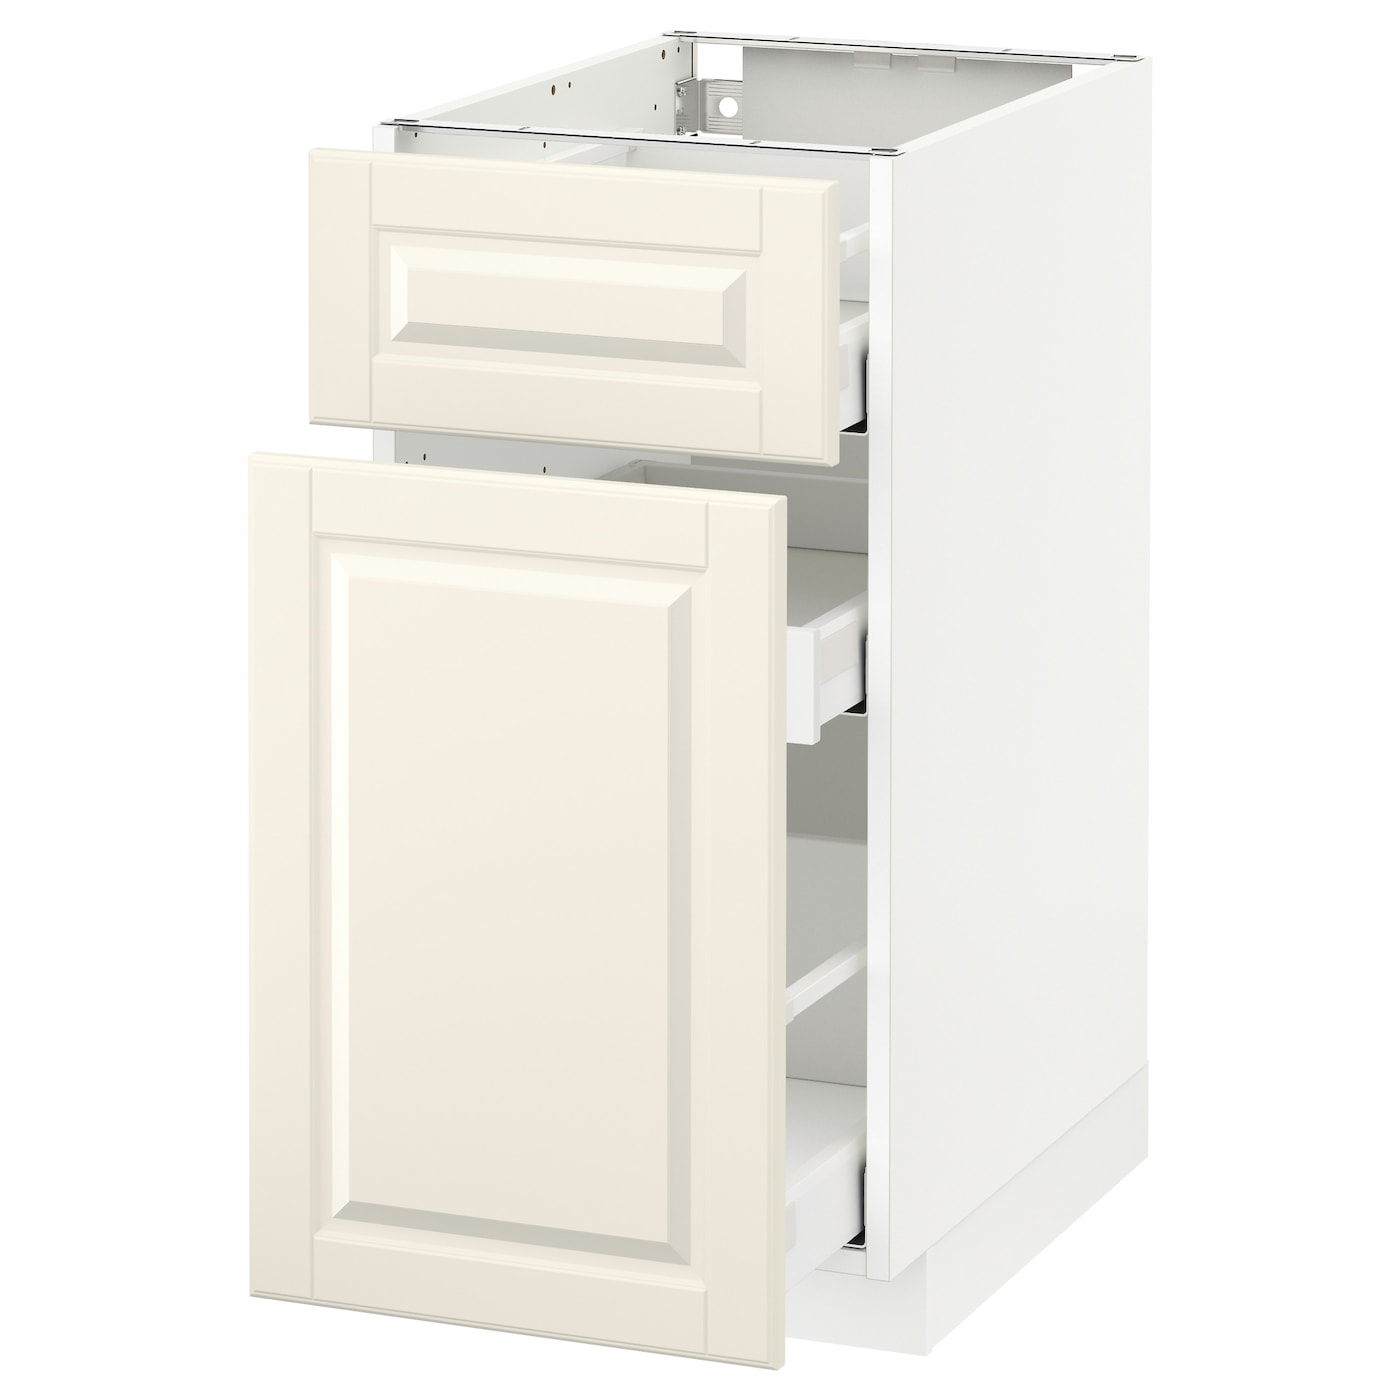 metod maximera base cabinet p out storage drawer white bodbyn off white 40 x 60 cm ikea. Black Bedroom Furniture Sets. Home Design Ideas